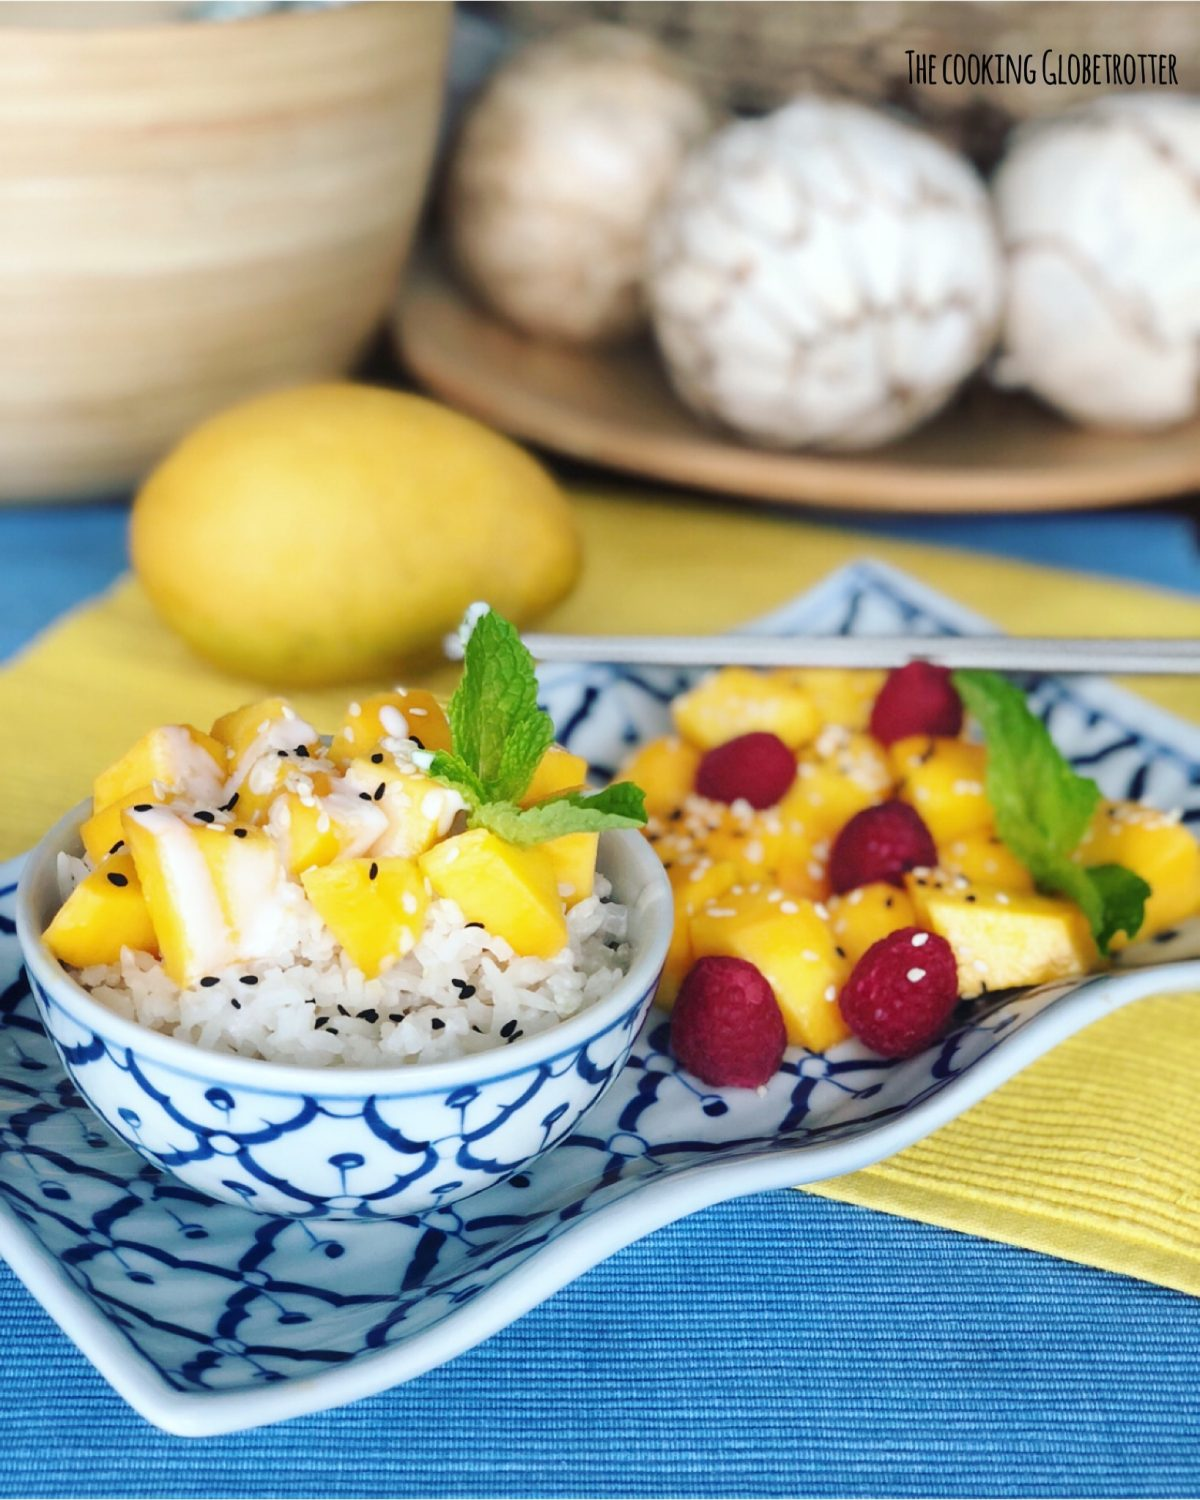 Index Featured Thai Mango Sticky rice, a simple dessert or snack that you can enjoy at home too. This easy and quick recipe will take you on a culinary journey to Thailand